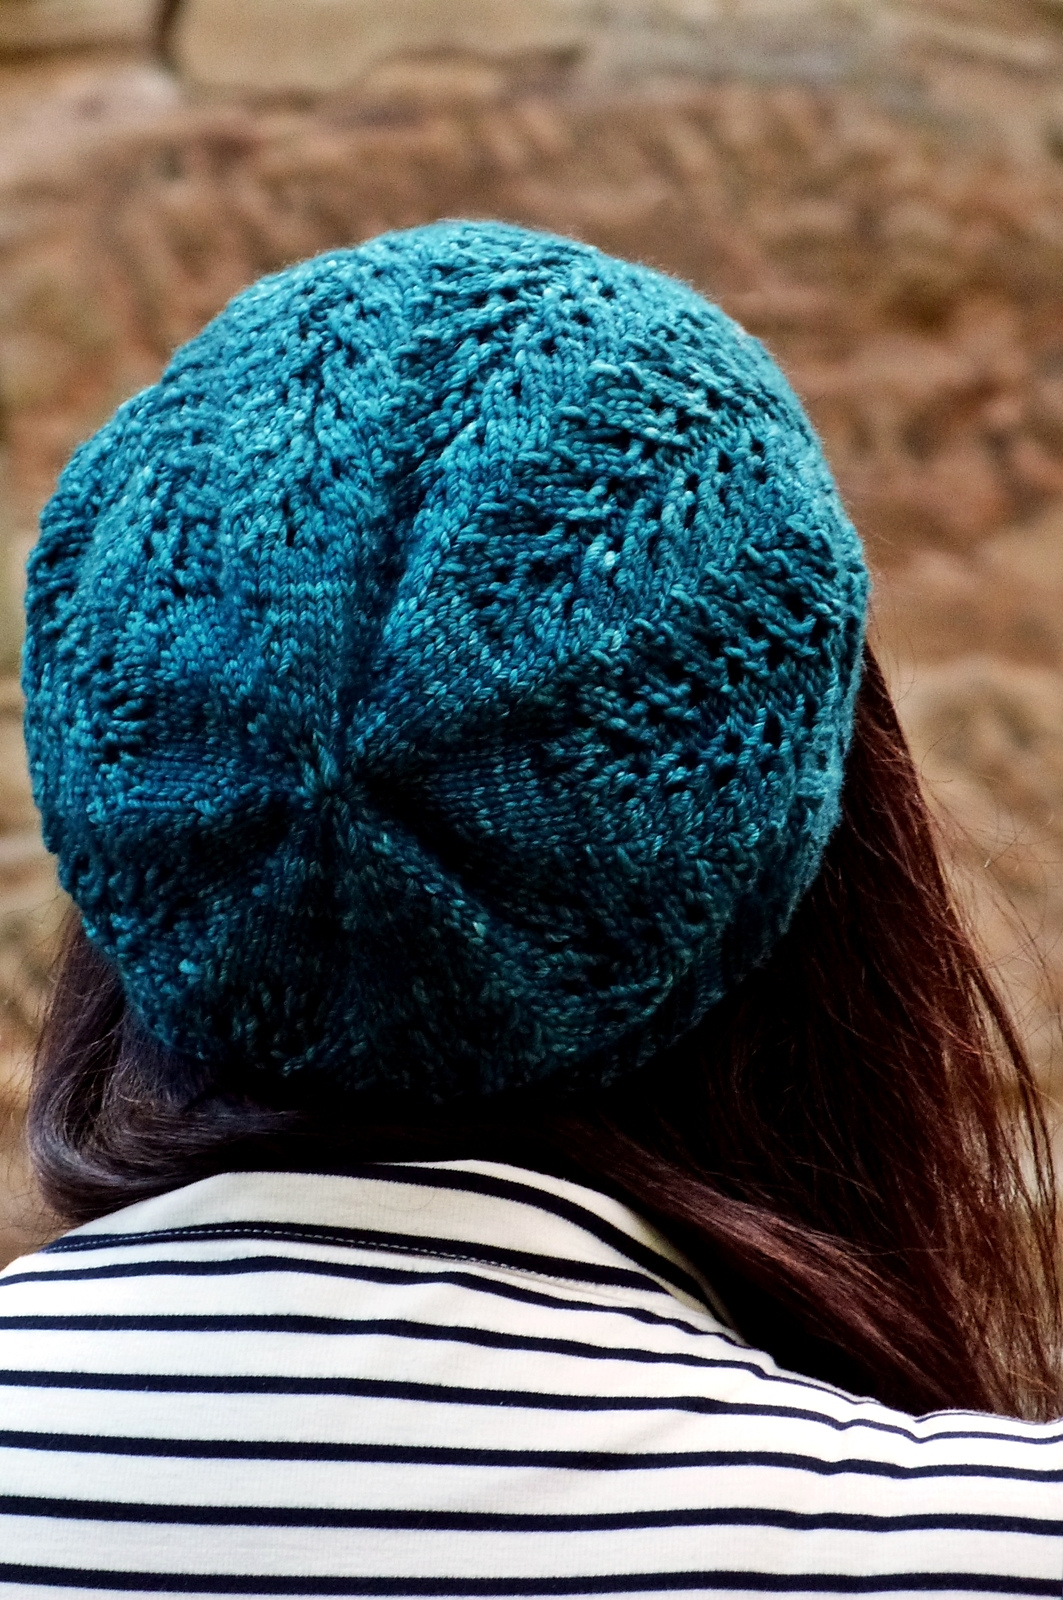 http://www.ravelry.com/patterns/library/seaforth-2